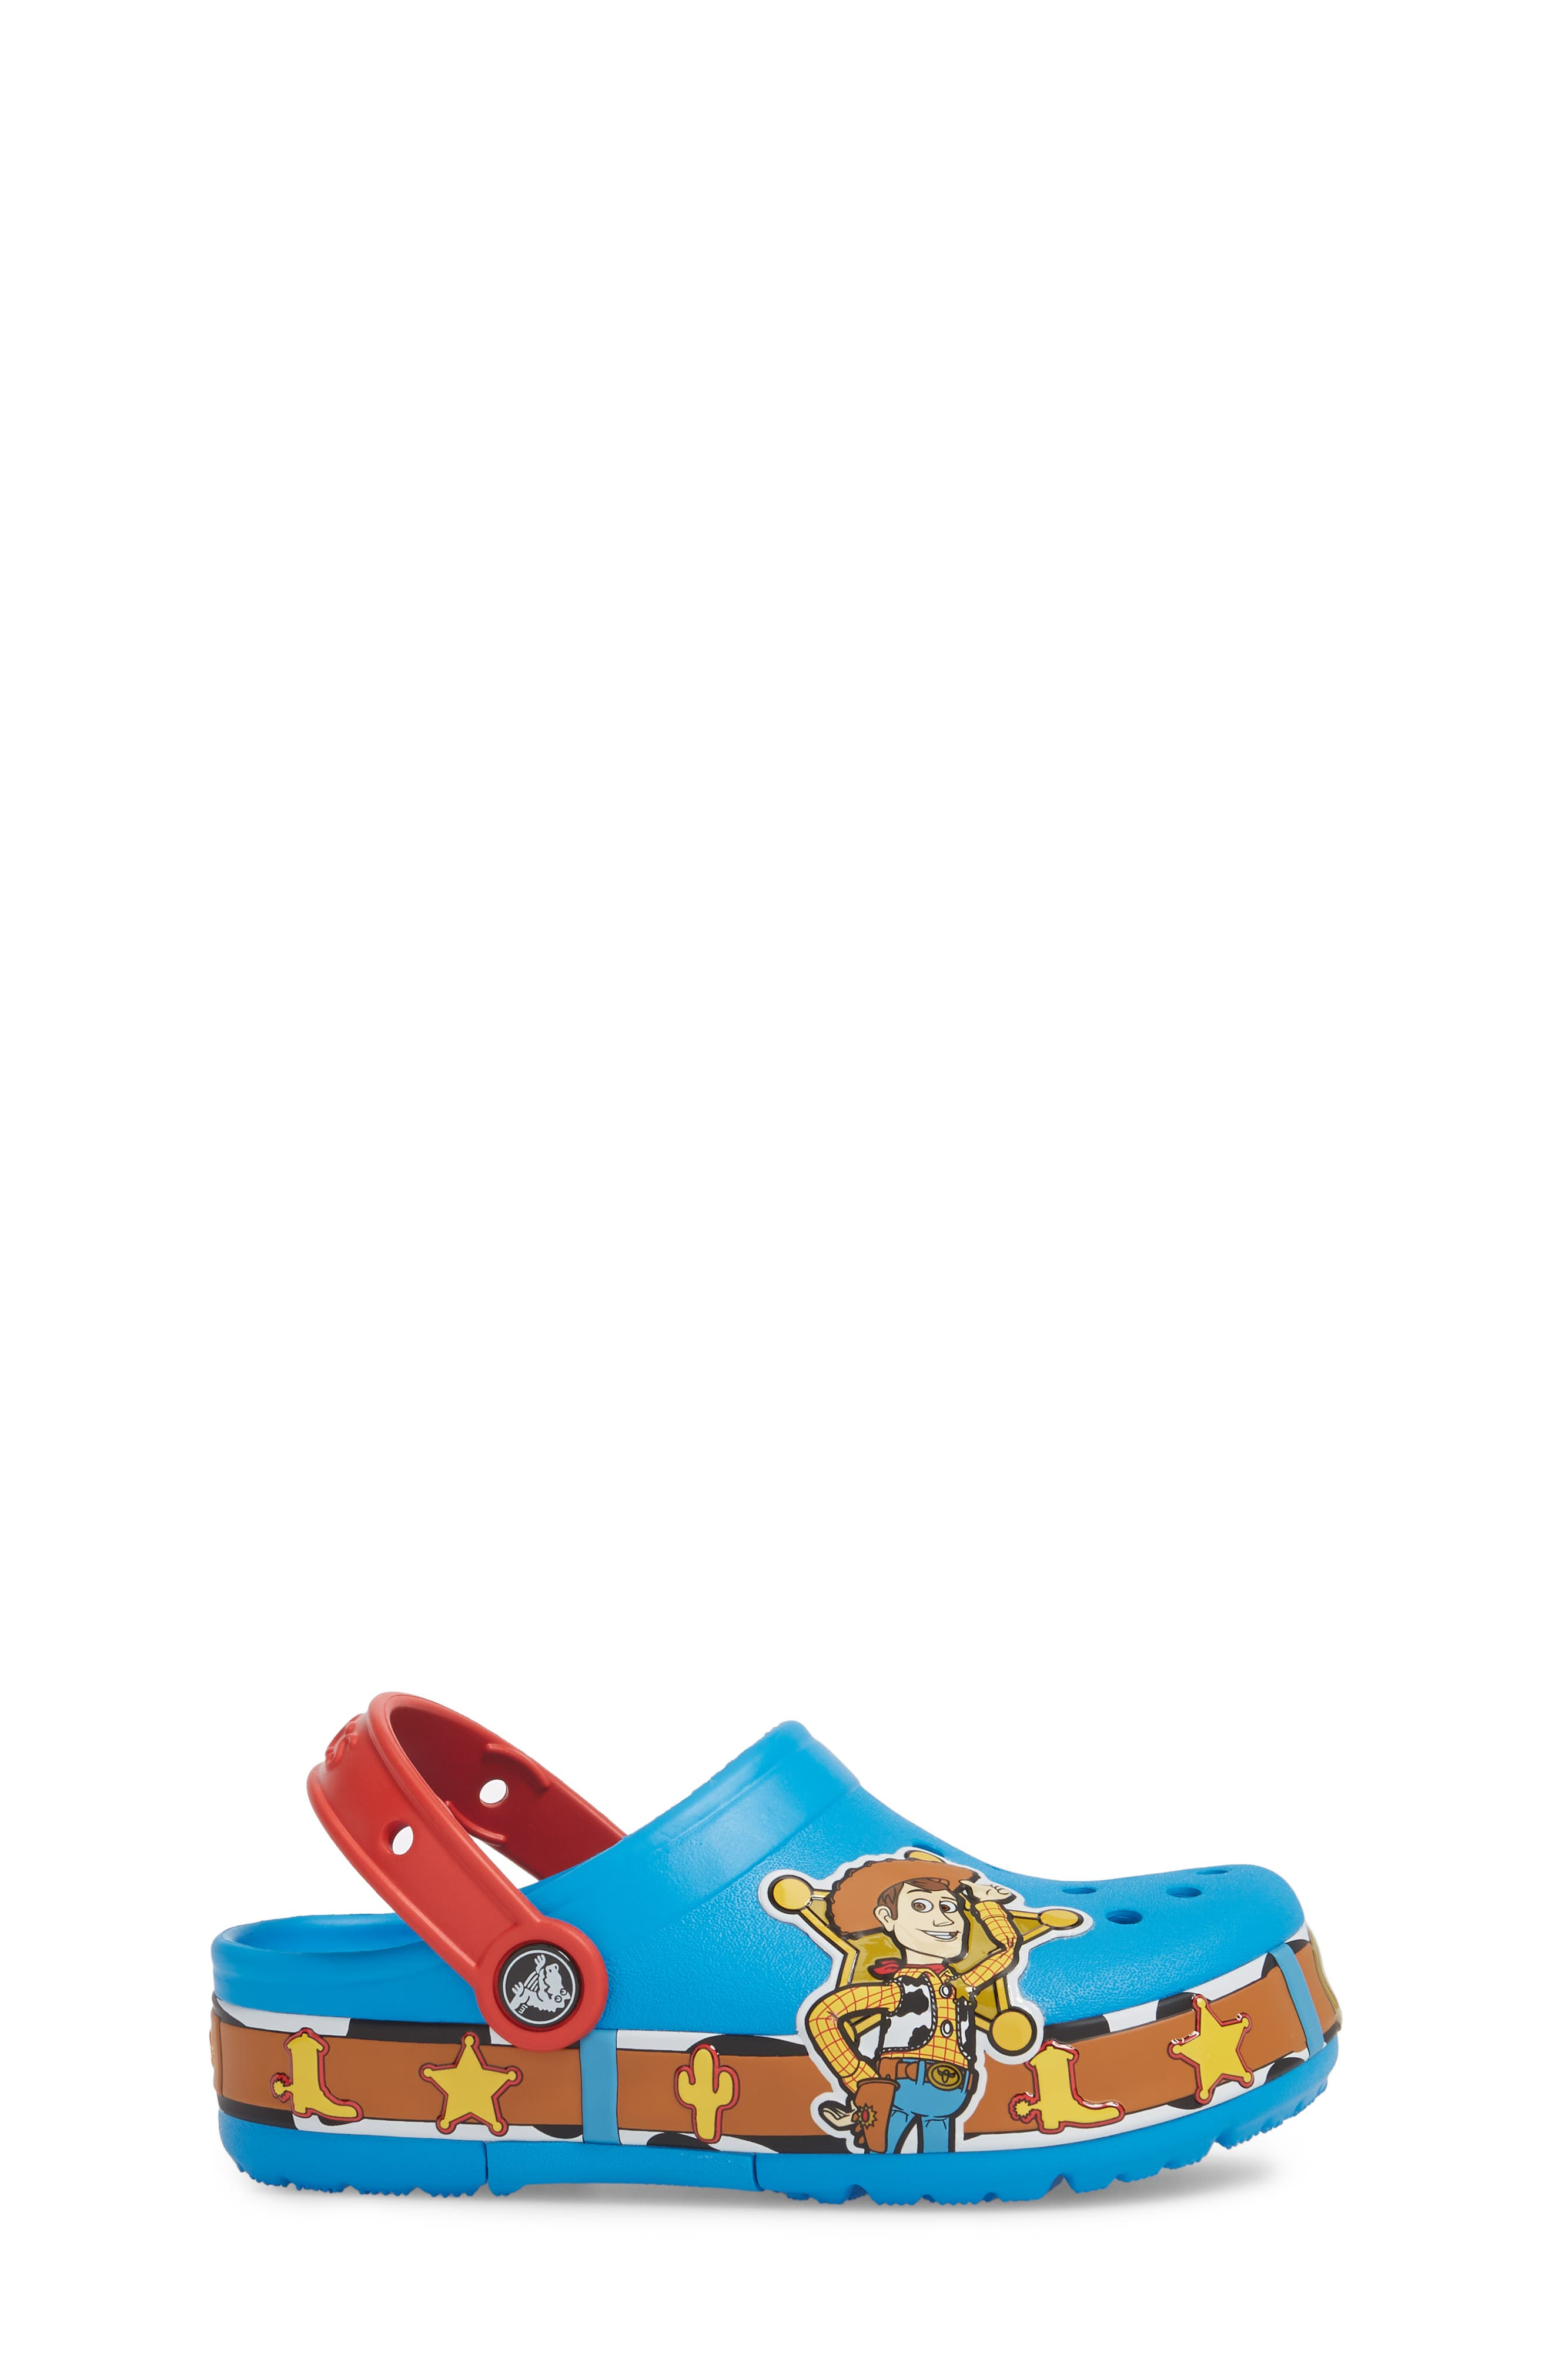 Disney Toy Story - Woody Crocband Light-Up Slip-On,                             Alternate thumbnail 3, color,                             456